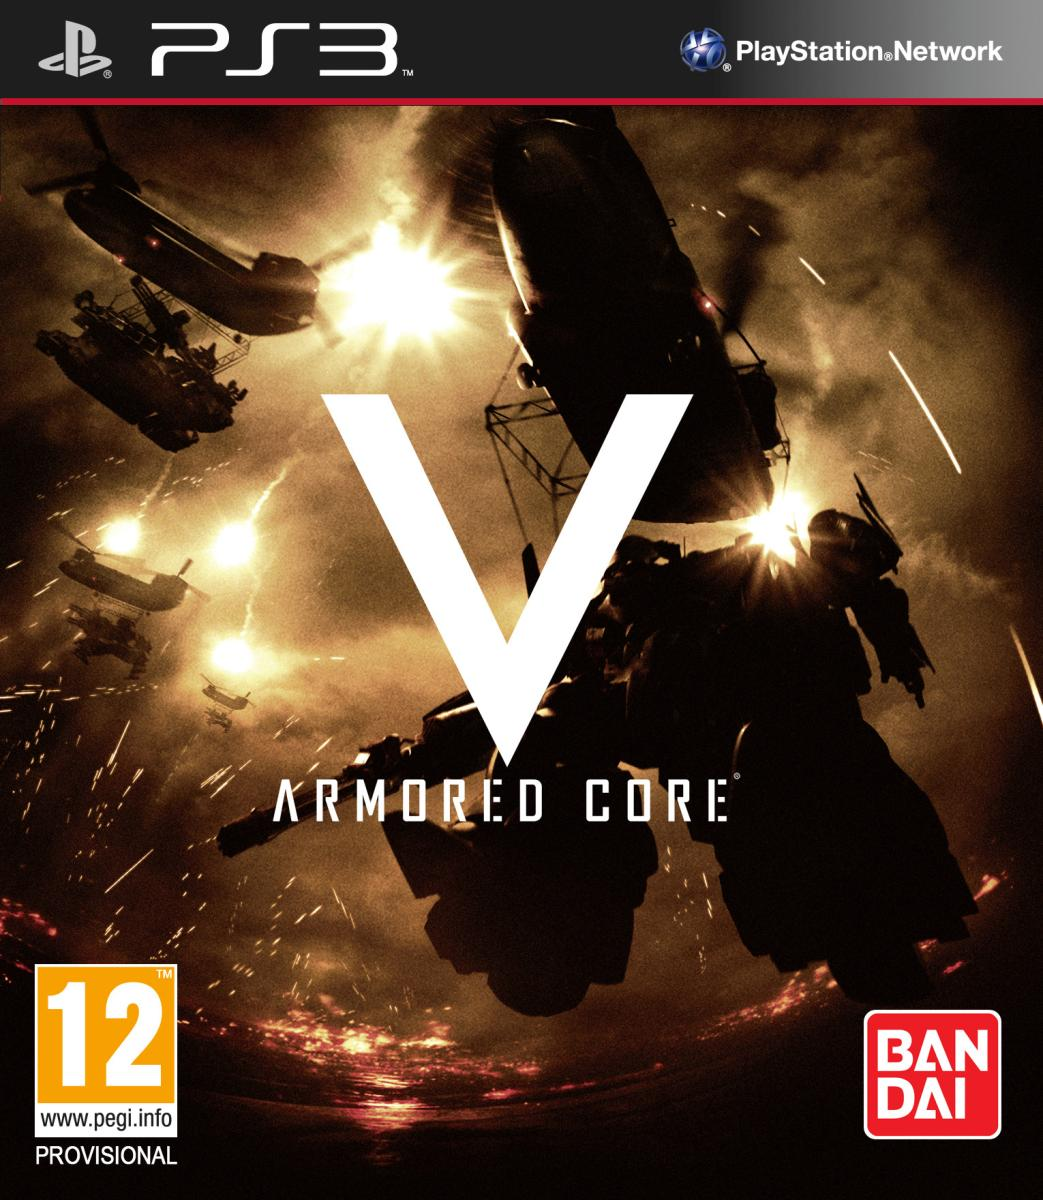 Armored Core V 2012 PS3 SotMarket.ru 2500.000